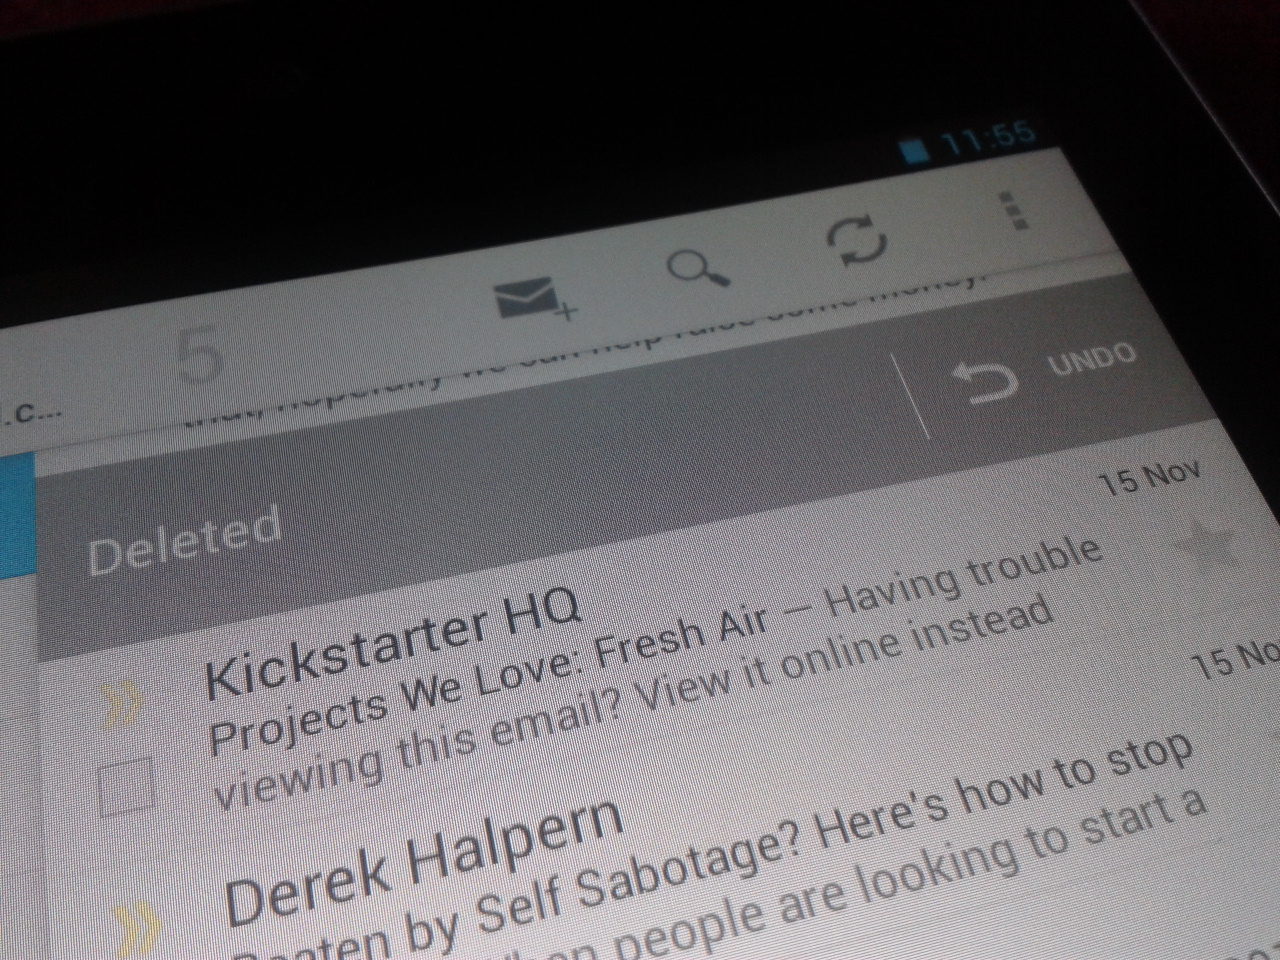 Deleted email in Android 4.2